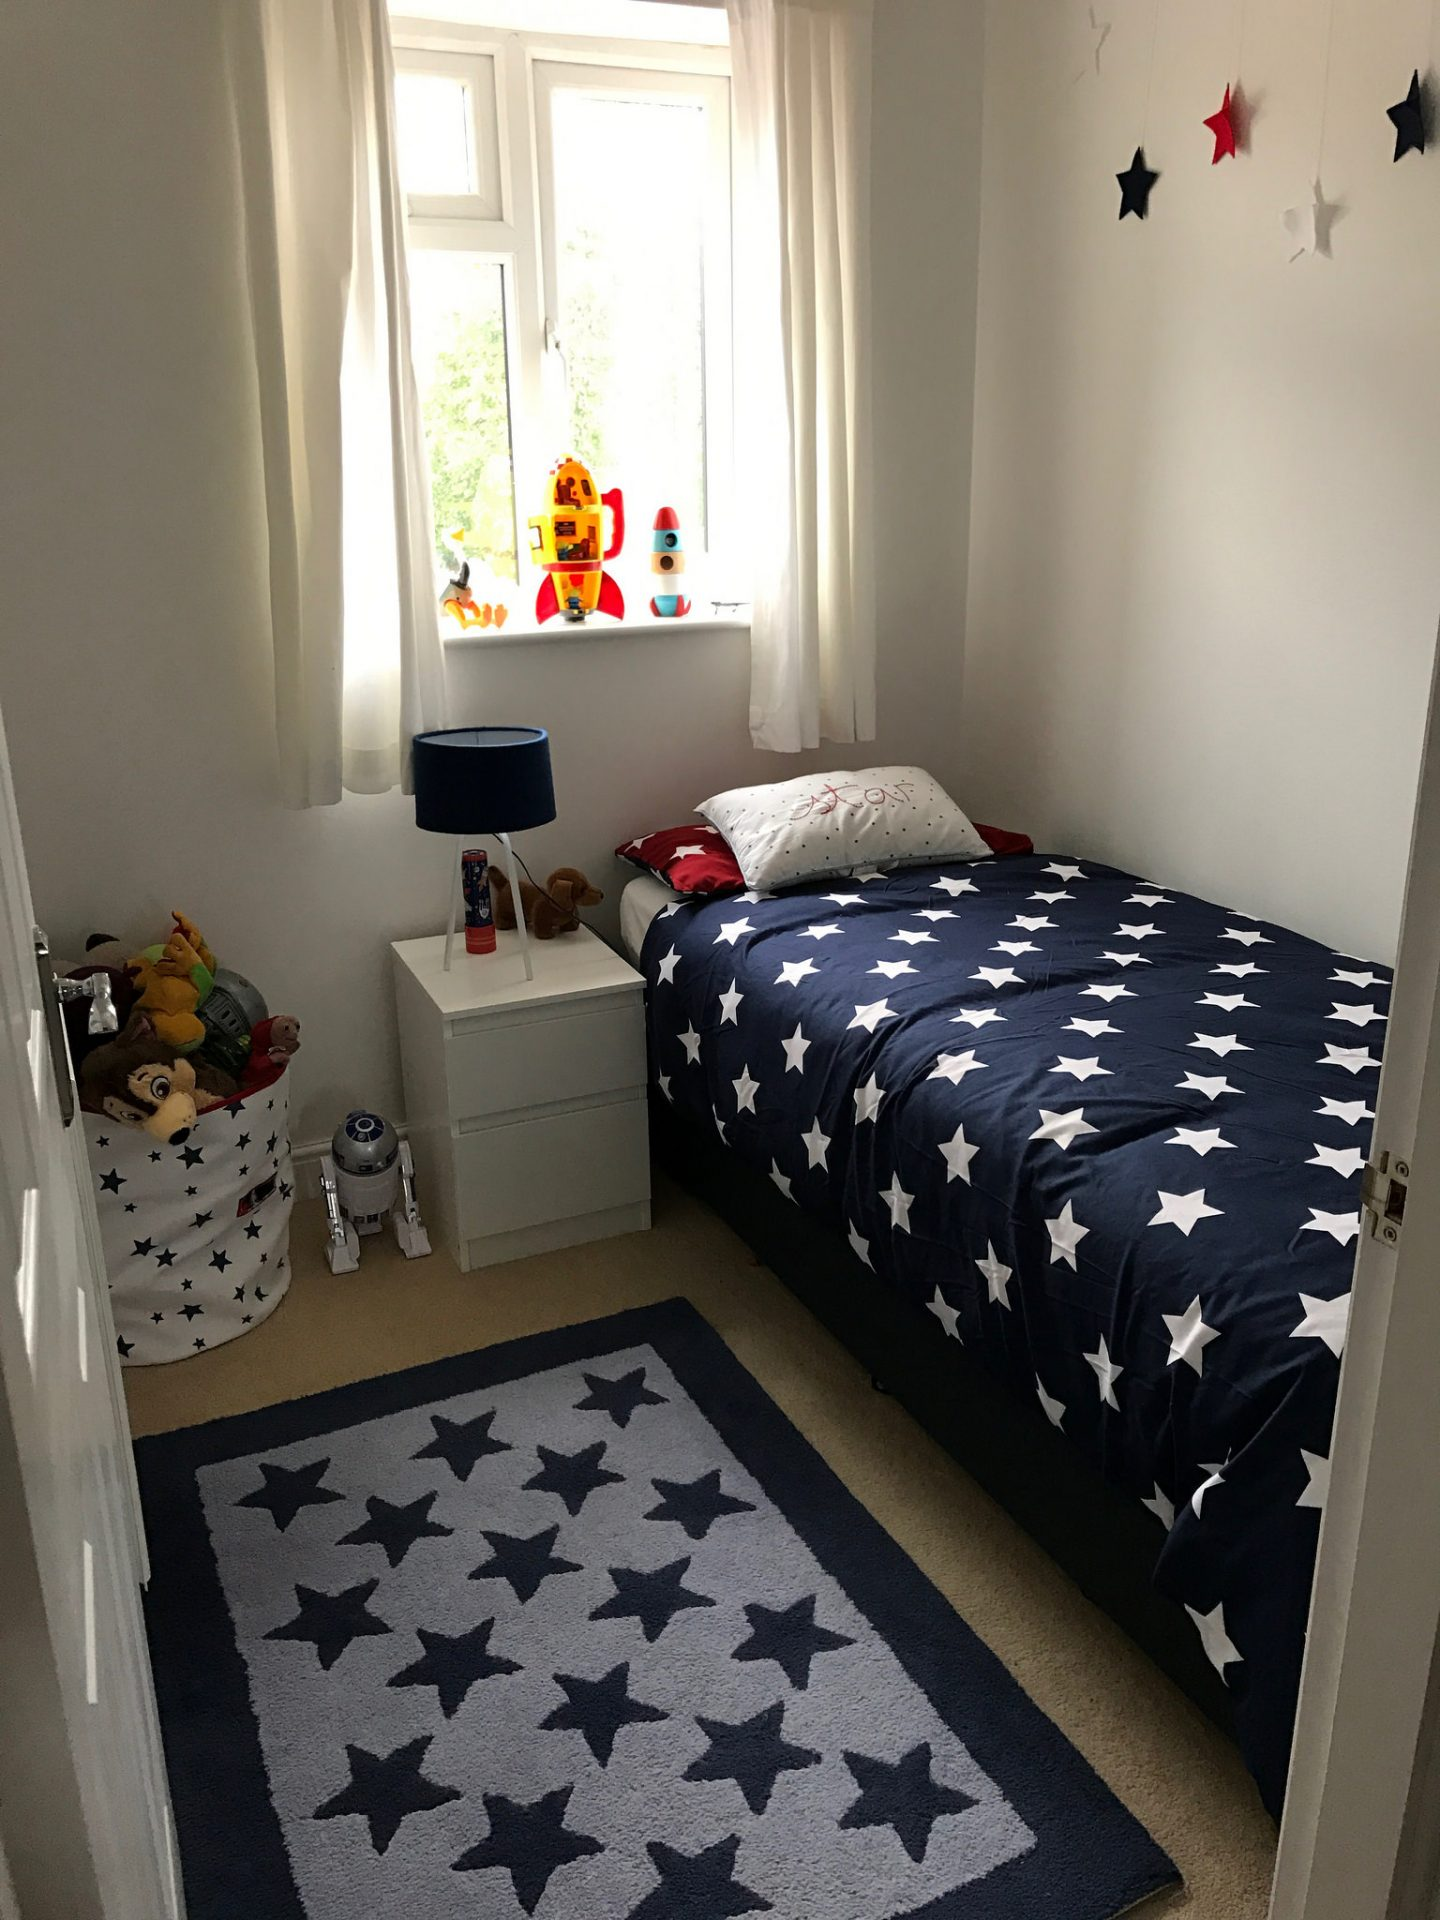 A space themed boy's bedroom